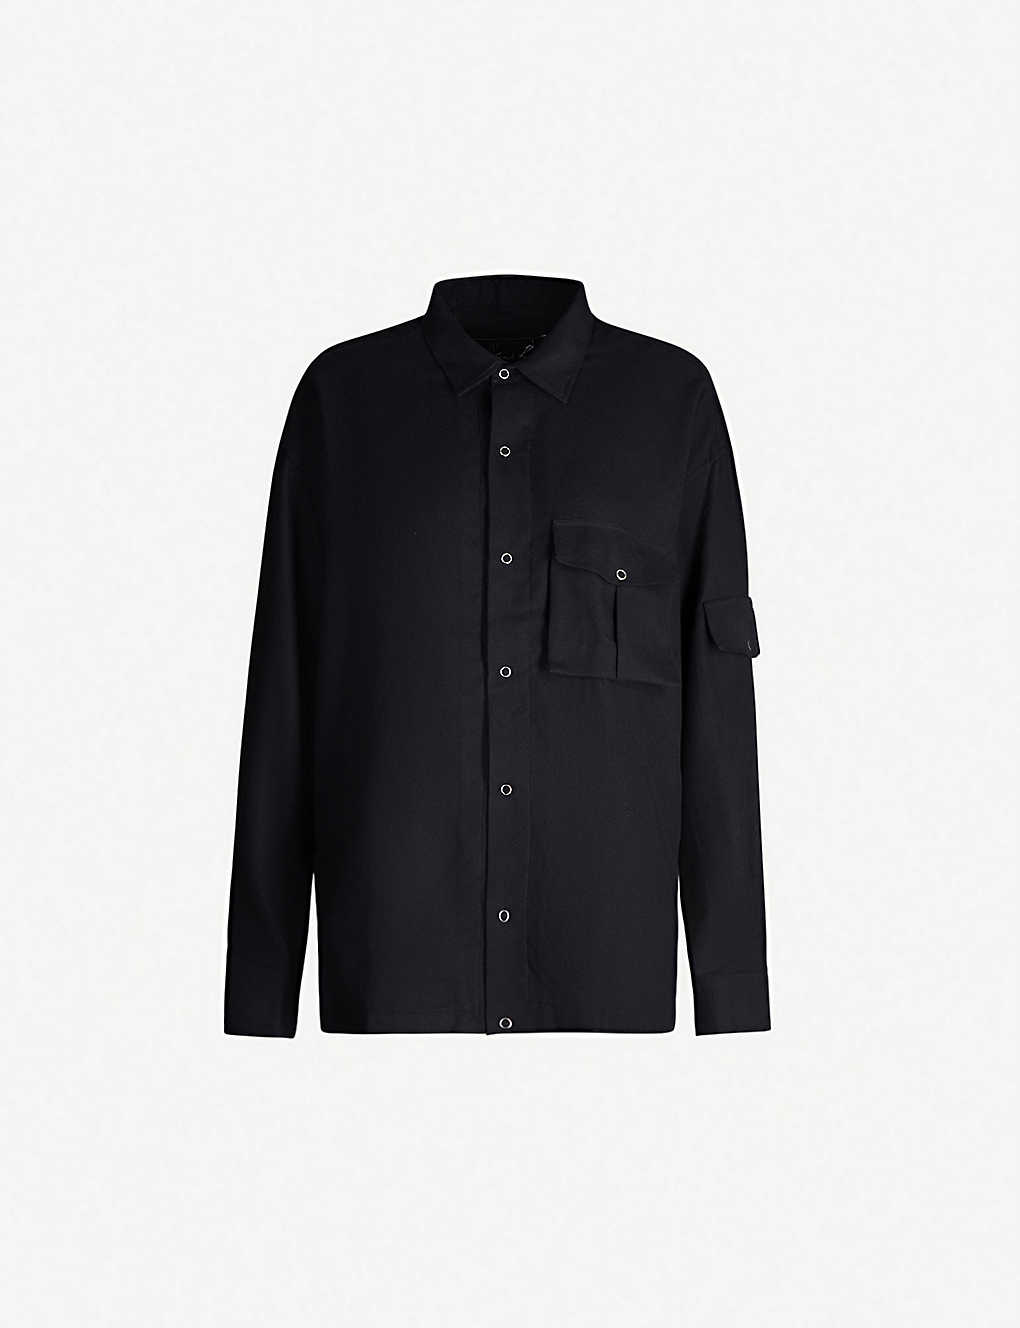 Martine Rose T-shirts Shock badge-embroidered brushed-cotton shirt